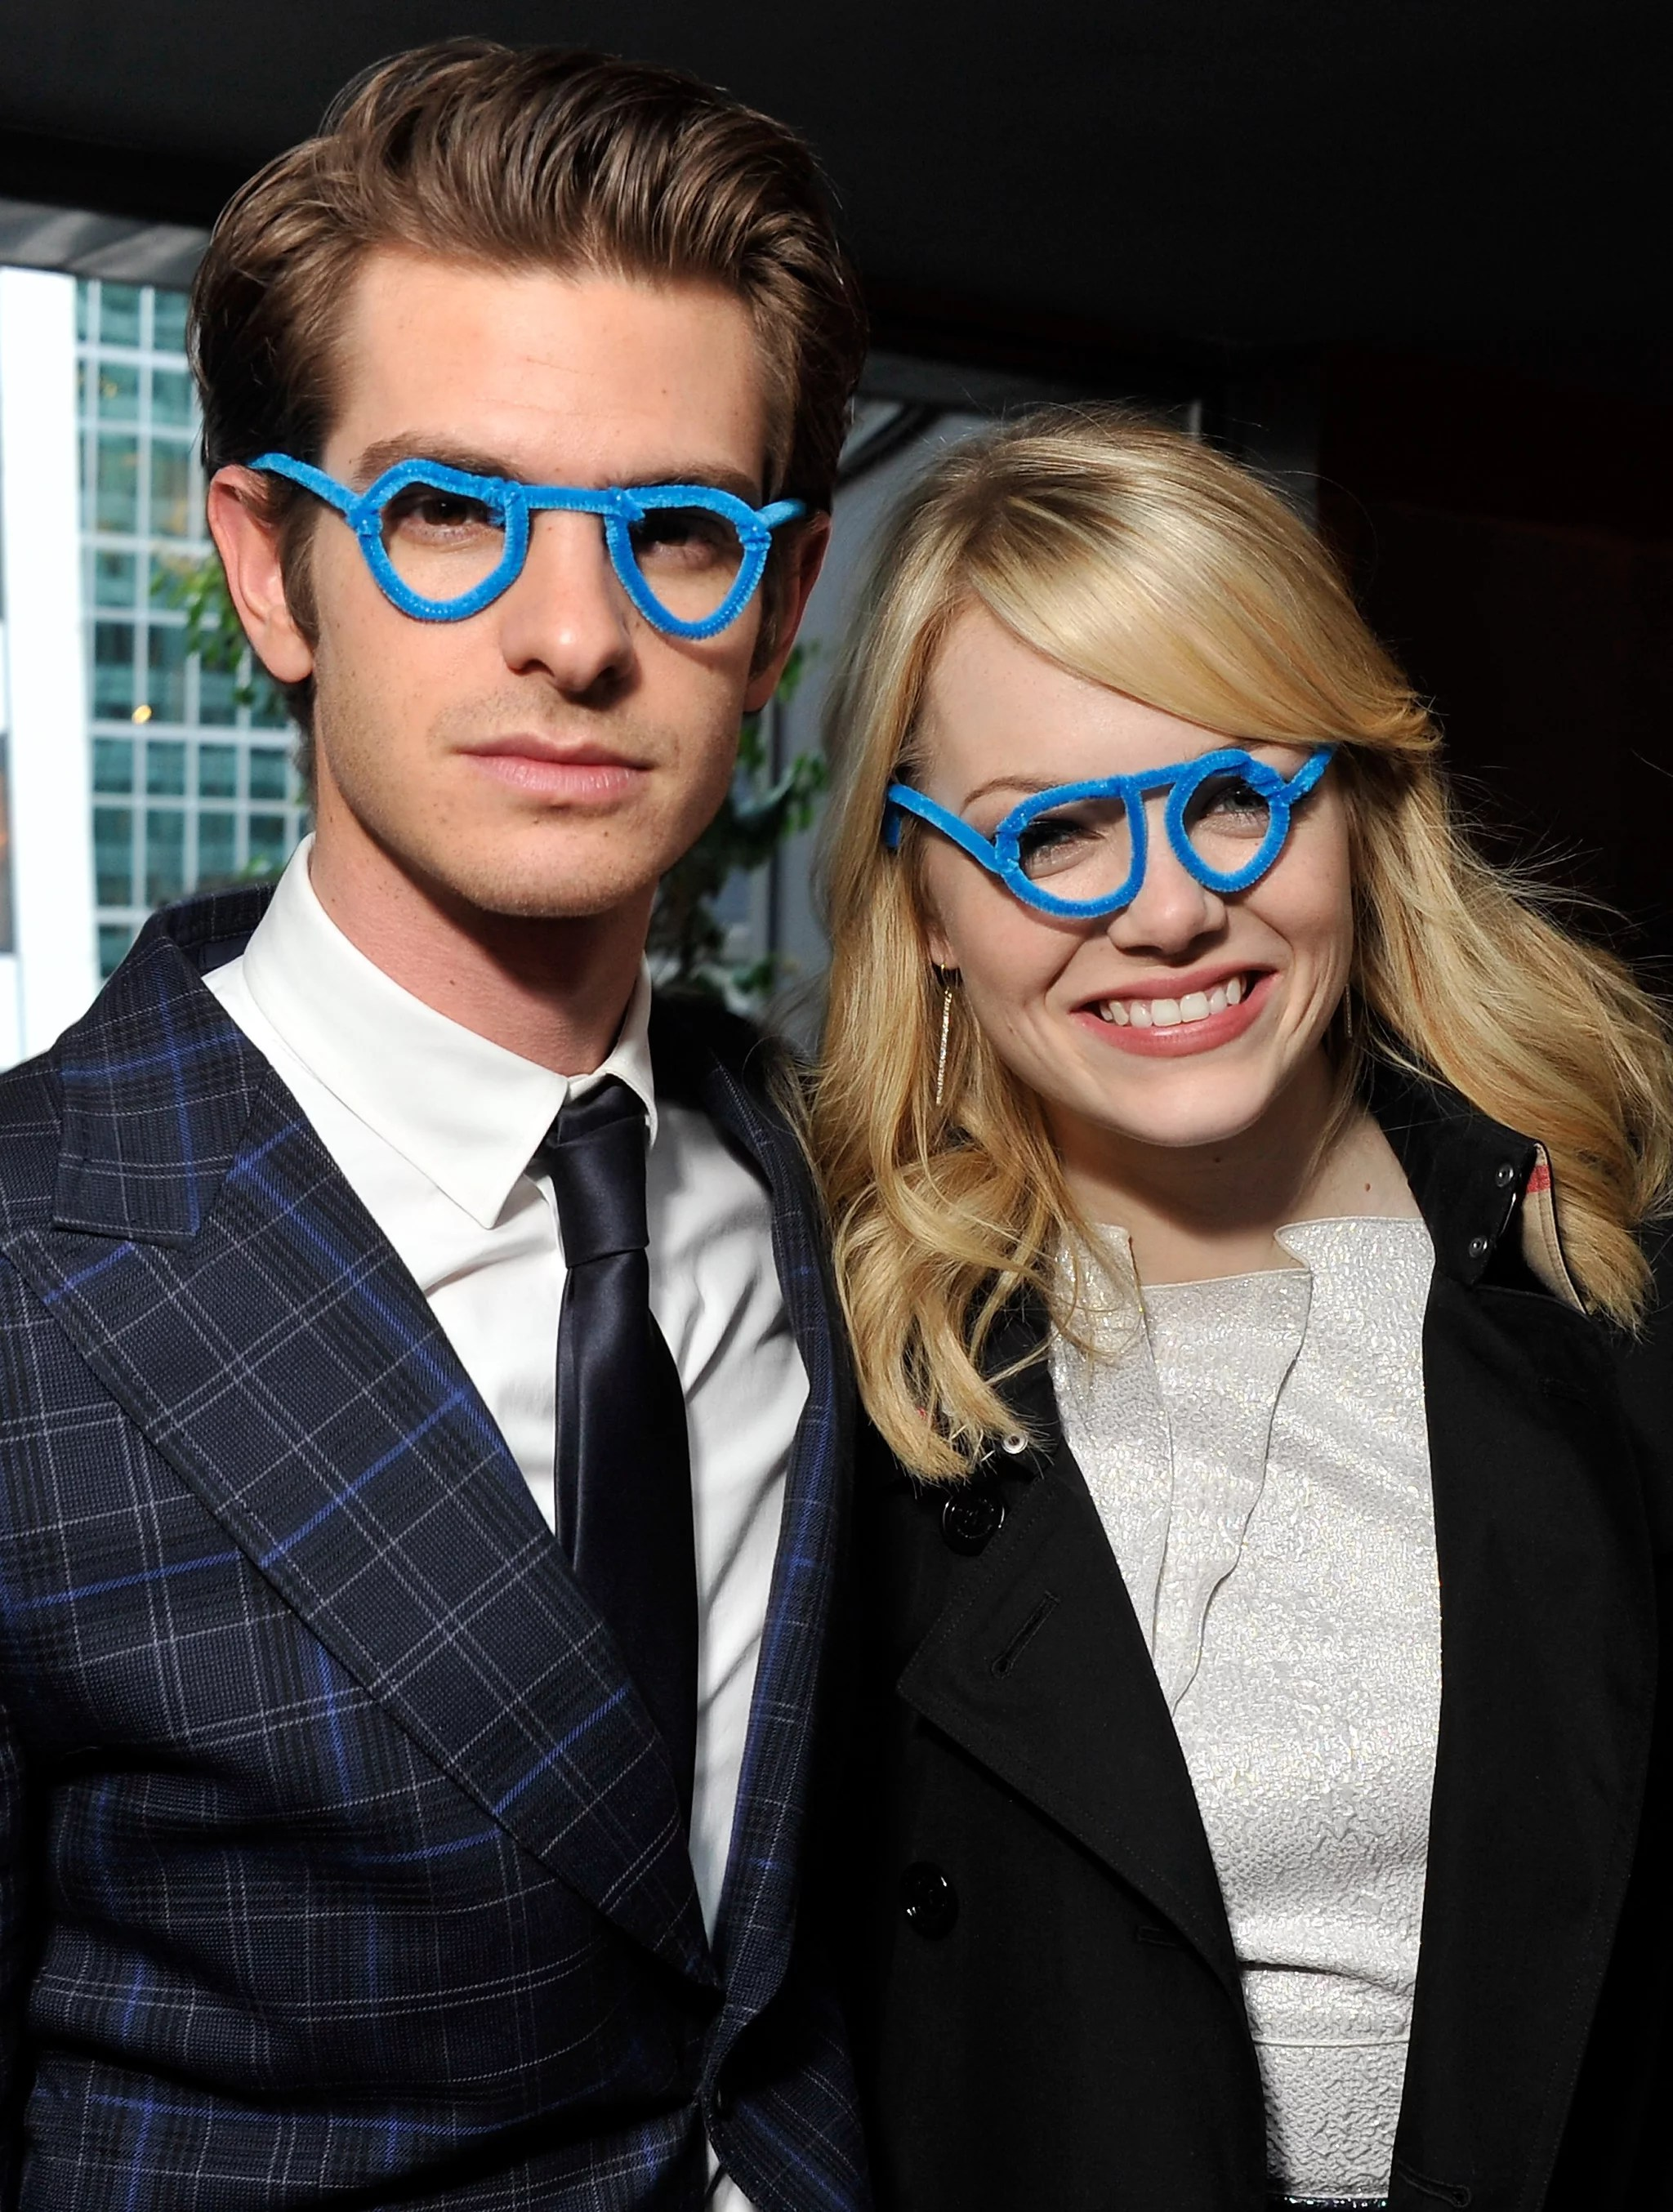 Andrew Garfield Glasses : andrew, garfield, glasses, Stone, Boyfriend, Andrew, Garfield, Sported, Silly, Glasses, During, Perfect, Excuse, Stone's, Smile, POPSUGAR, Celebrity, Photo